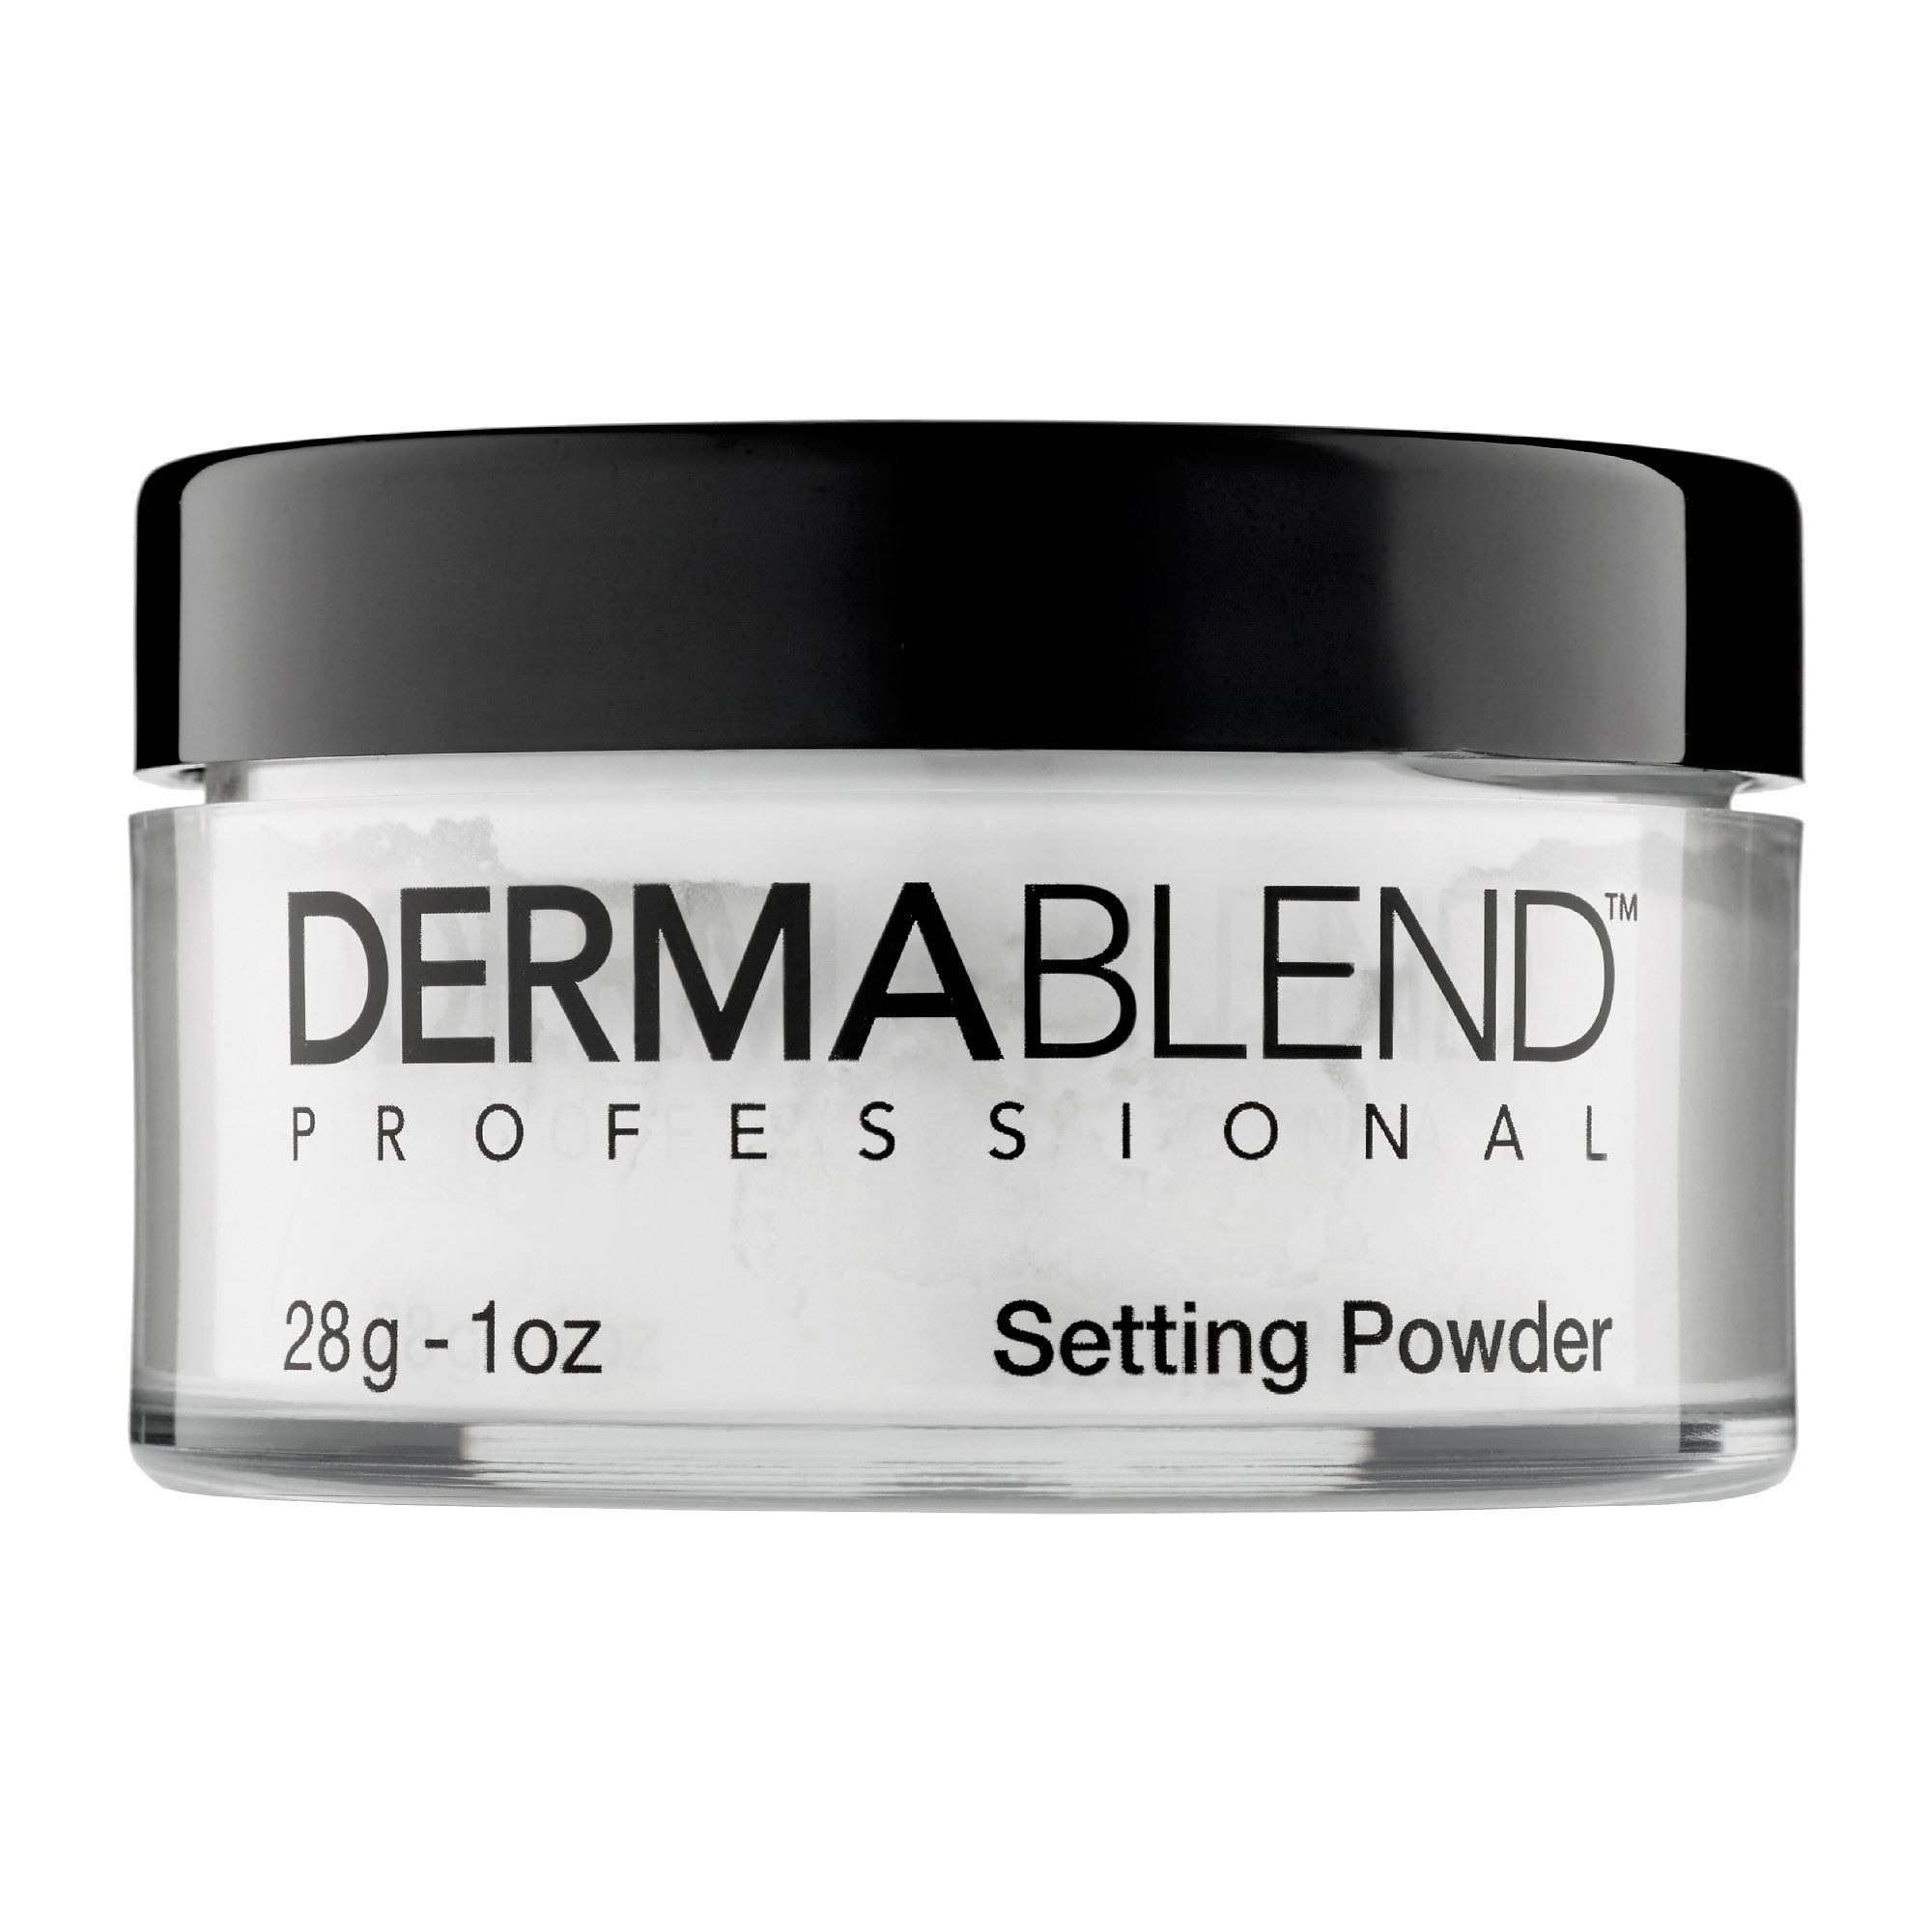 Shop Dermablend's Loose Setting Powder at Sephora. This